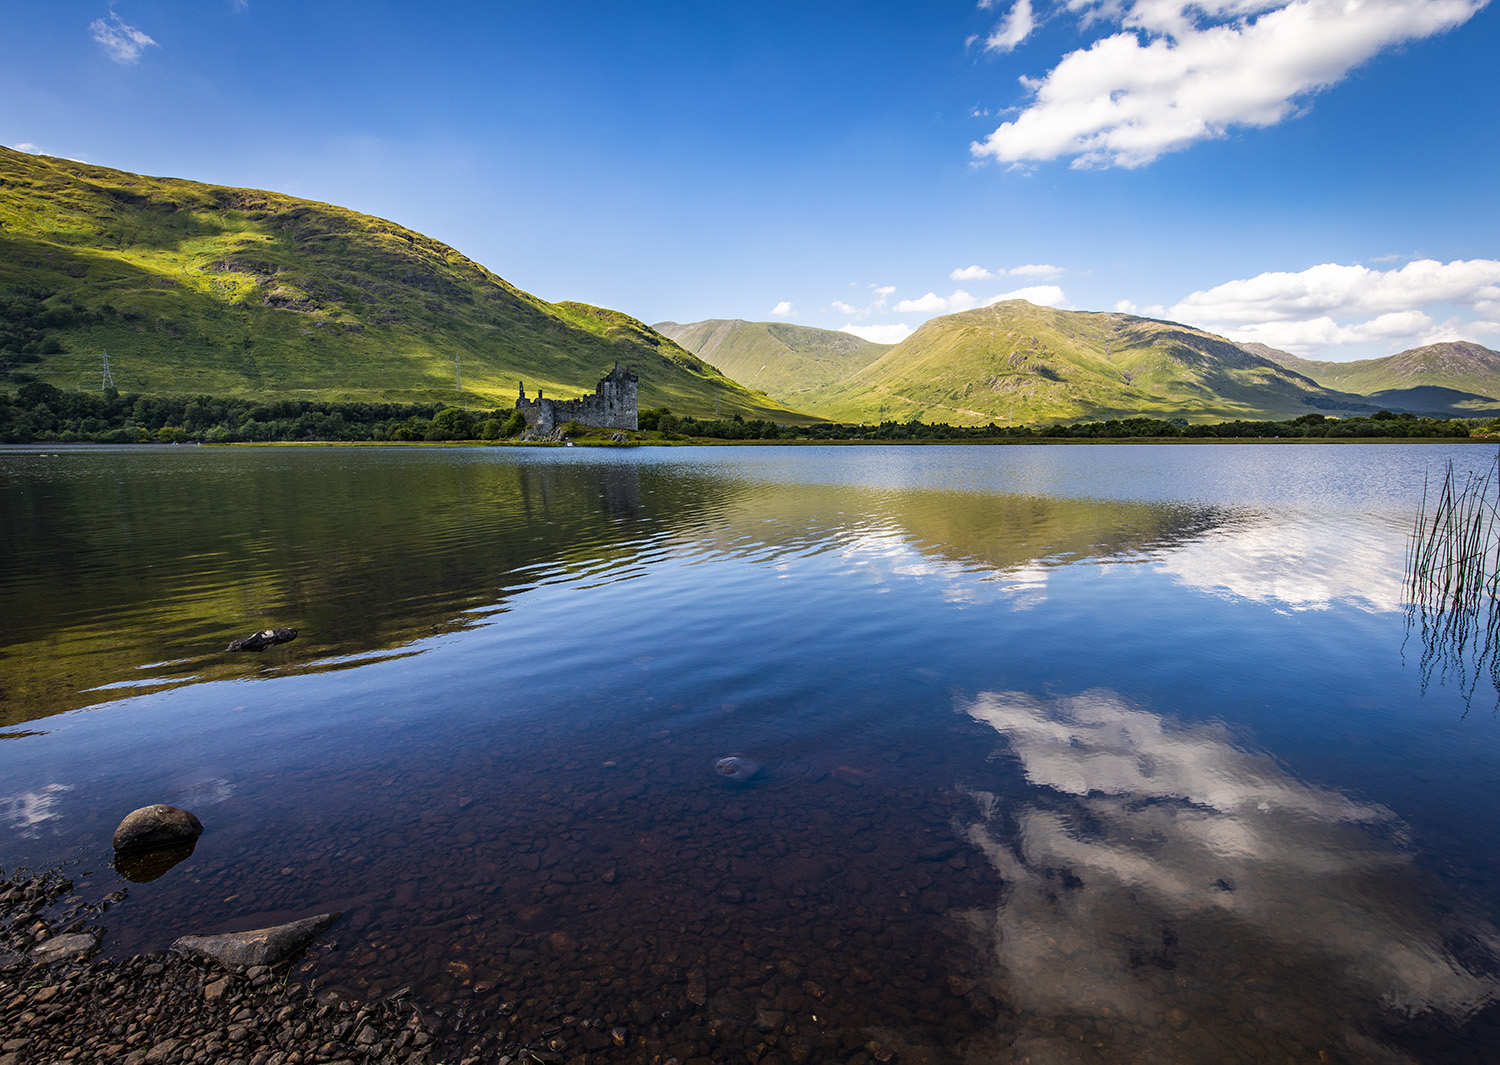 Kilchurn Castle and Loch Awe